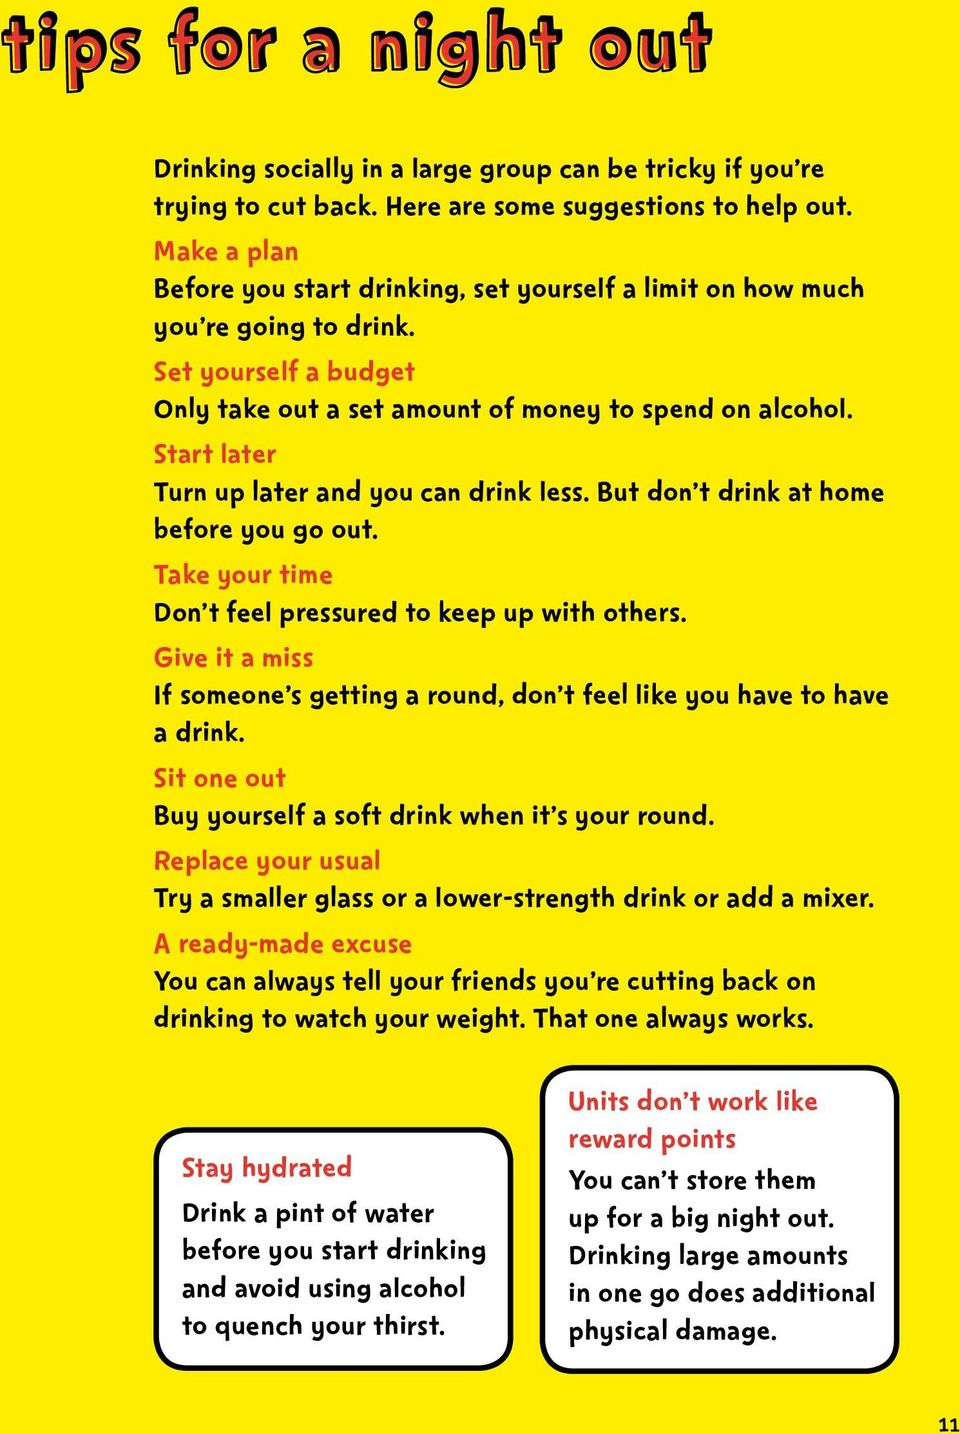 Start later Turn up later and you can drink less. But don t drink at home before you go out. Take your time Don t feel pressured to keep up with others.